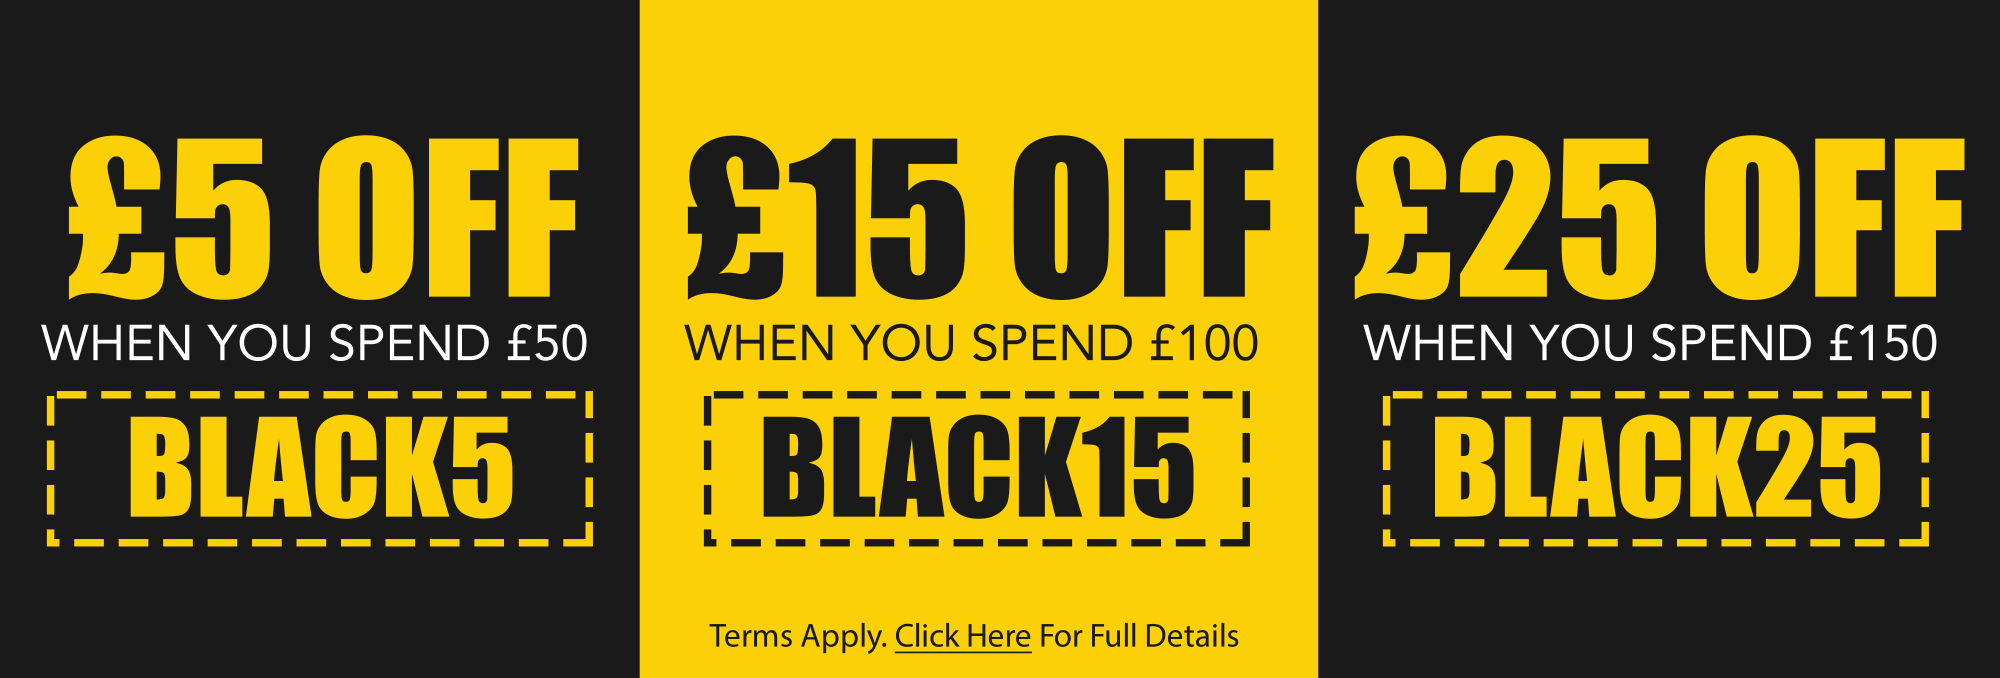 Black Friday Discount Codes - Save Up To £25 >>